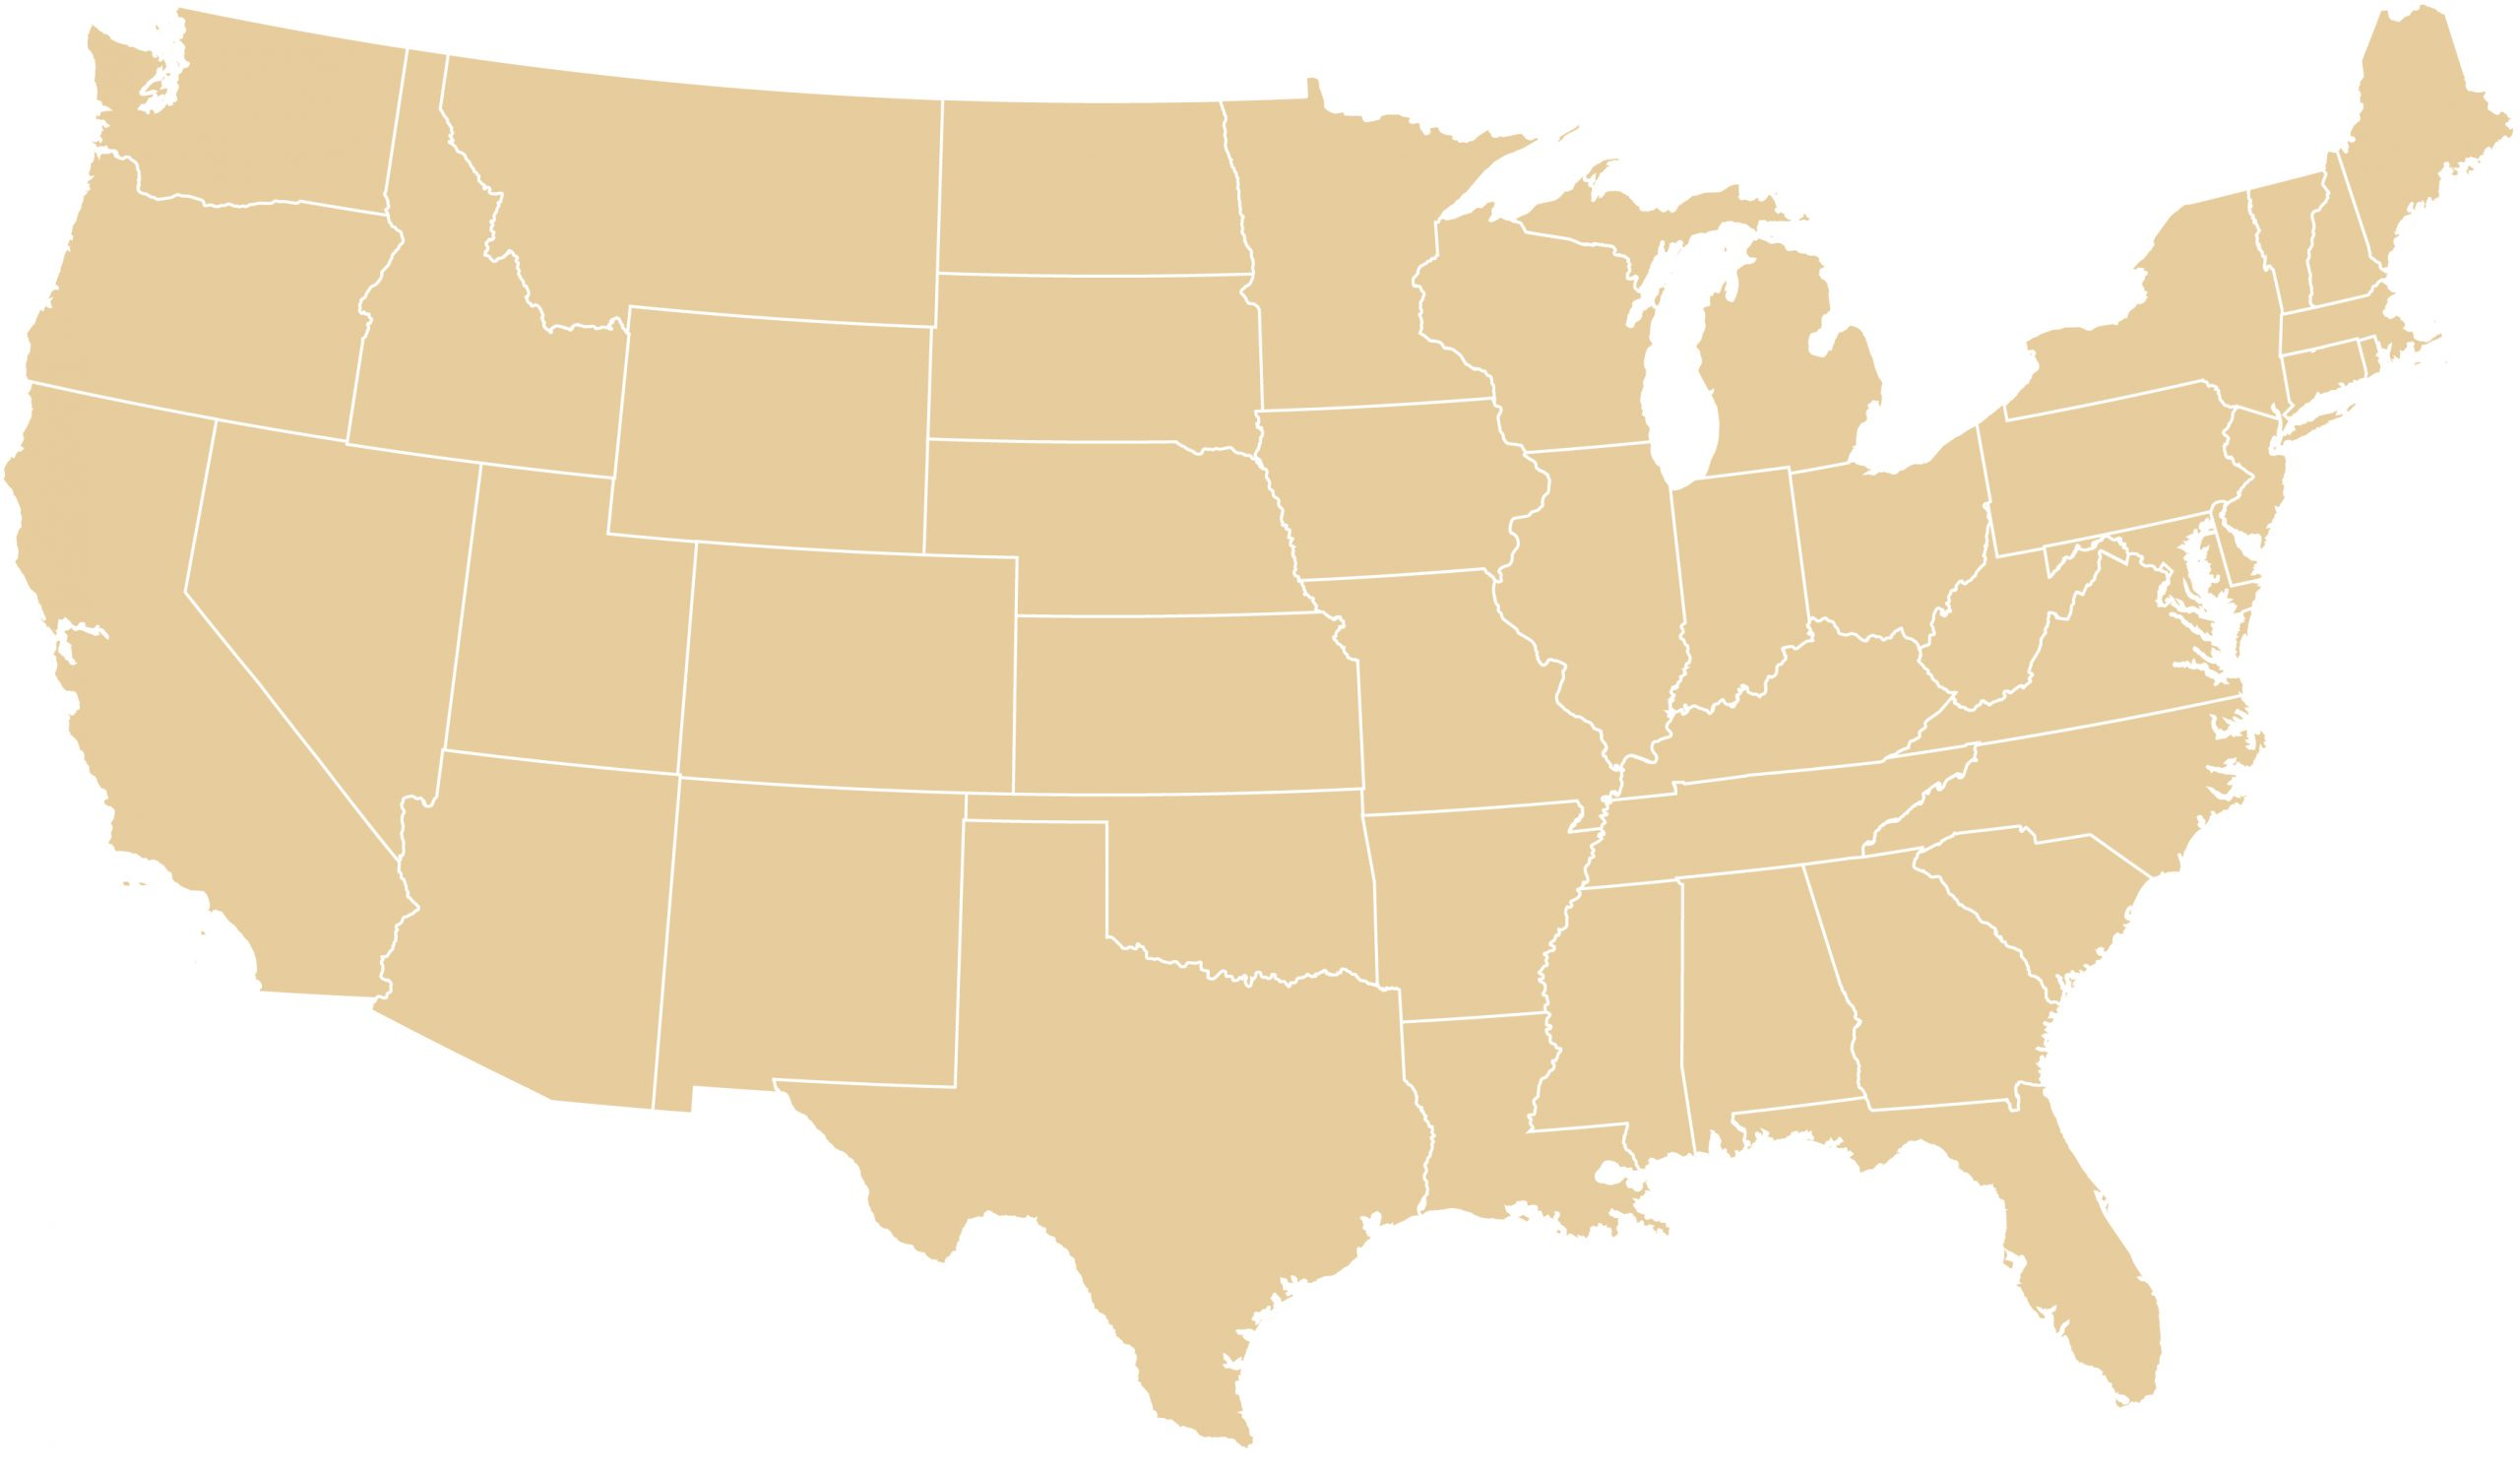 gold colored map of the USA